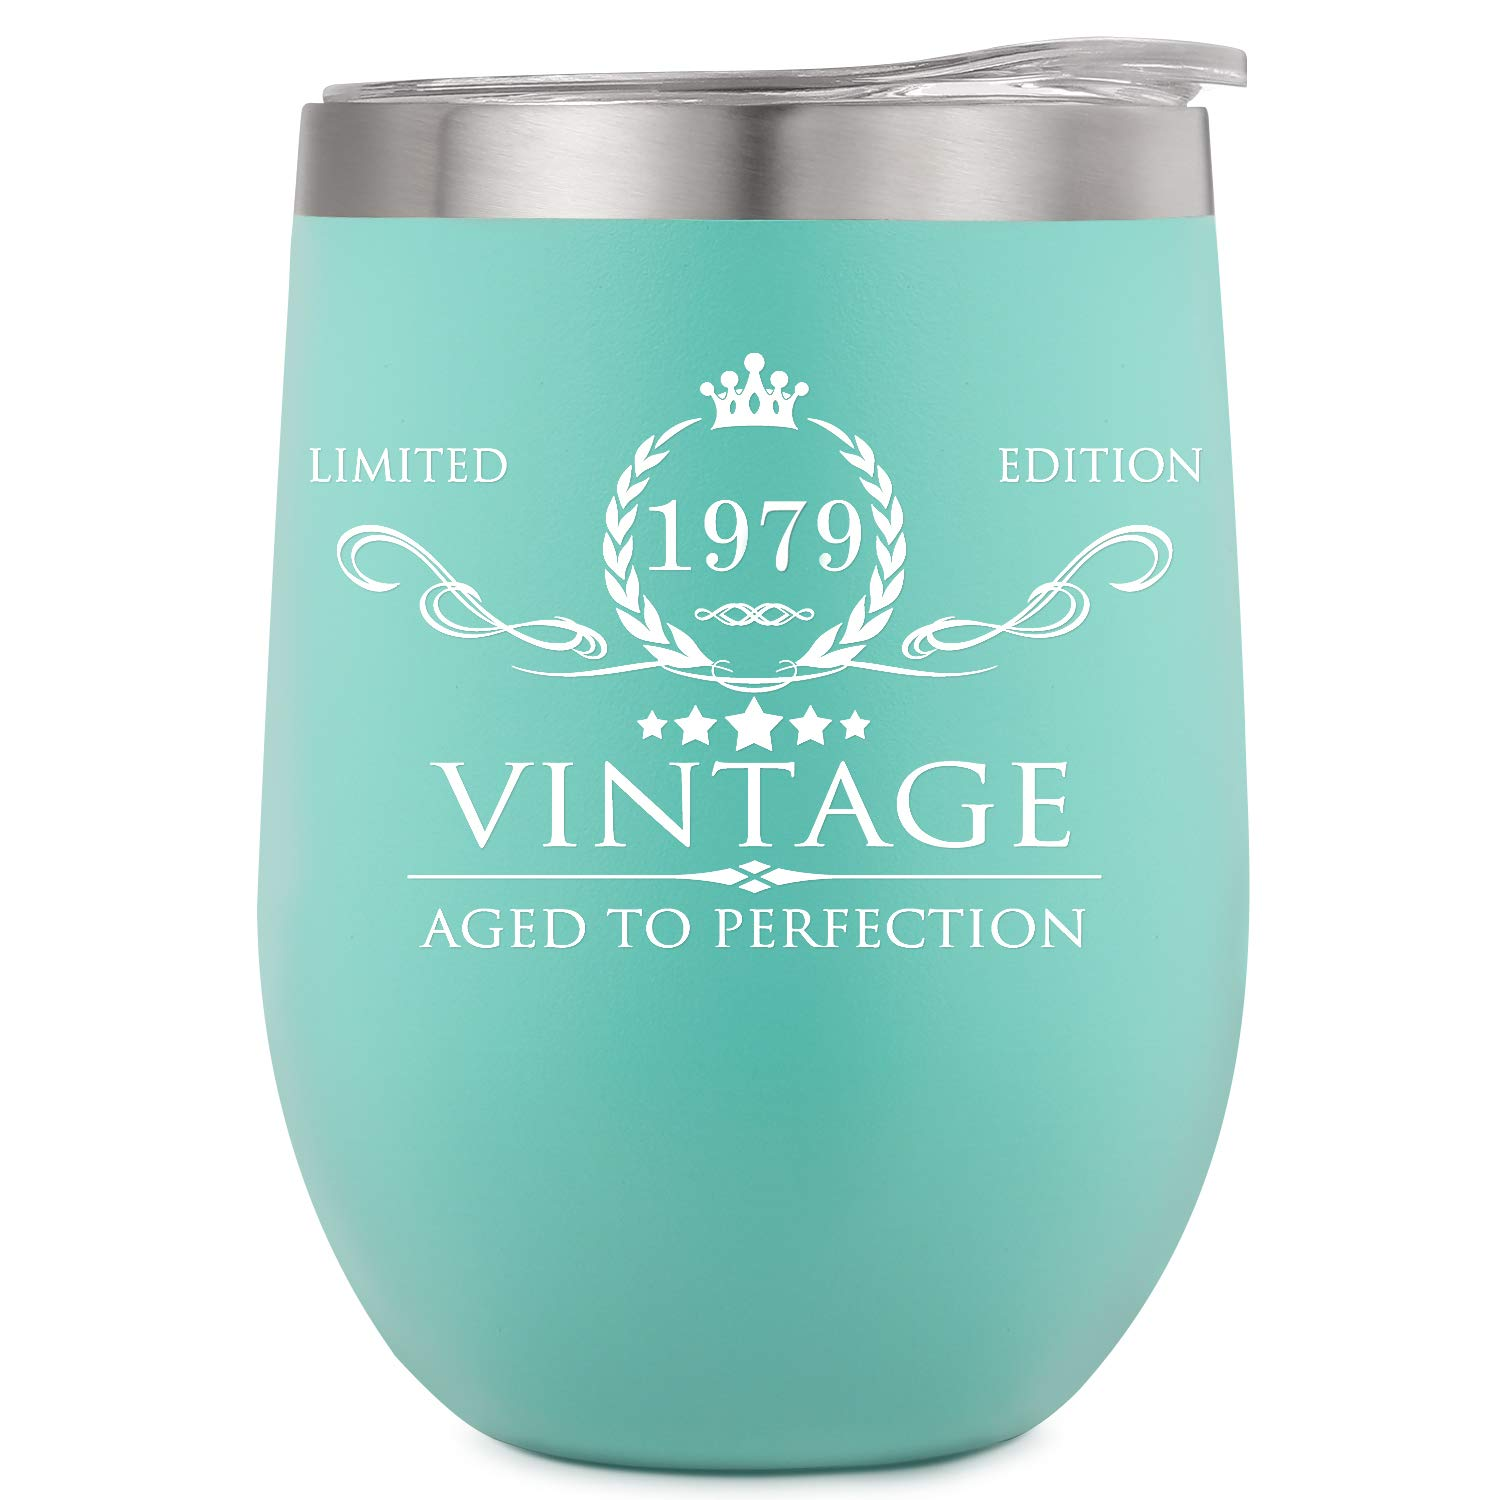 1979 40th Birthday Gifts for Women Men Insulated Wine Tumbler - 12oz Mint Double Wall Vacuum Cup with Lid - Funny 40th Anniversary Gifts Idea, Decorations for Her/Him, Mom, Dad, Husband, Wife